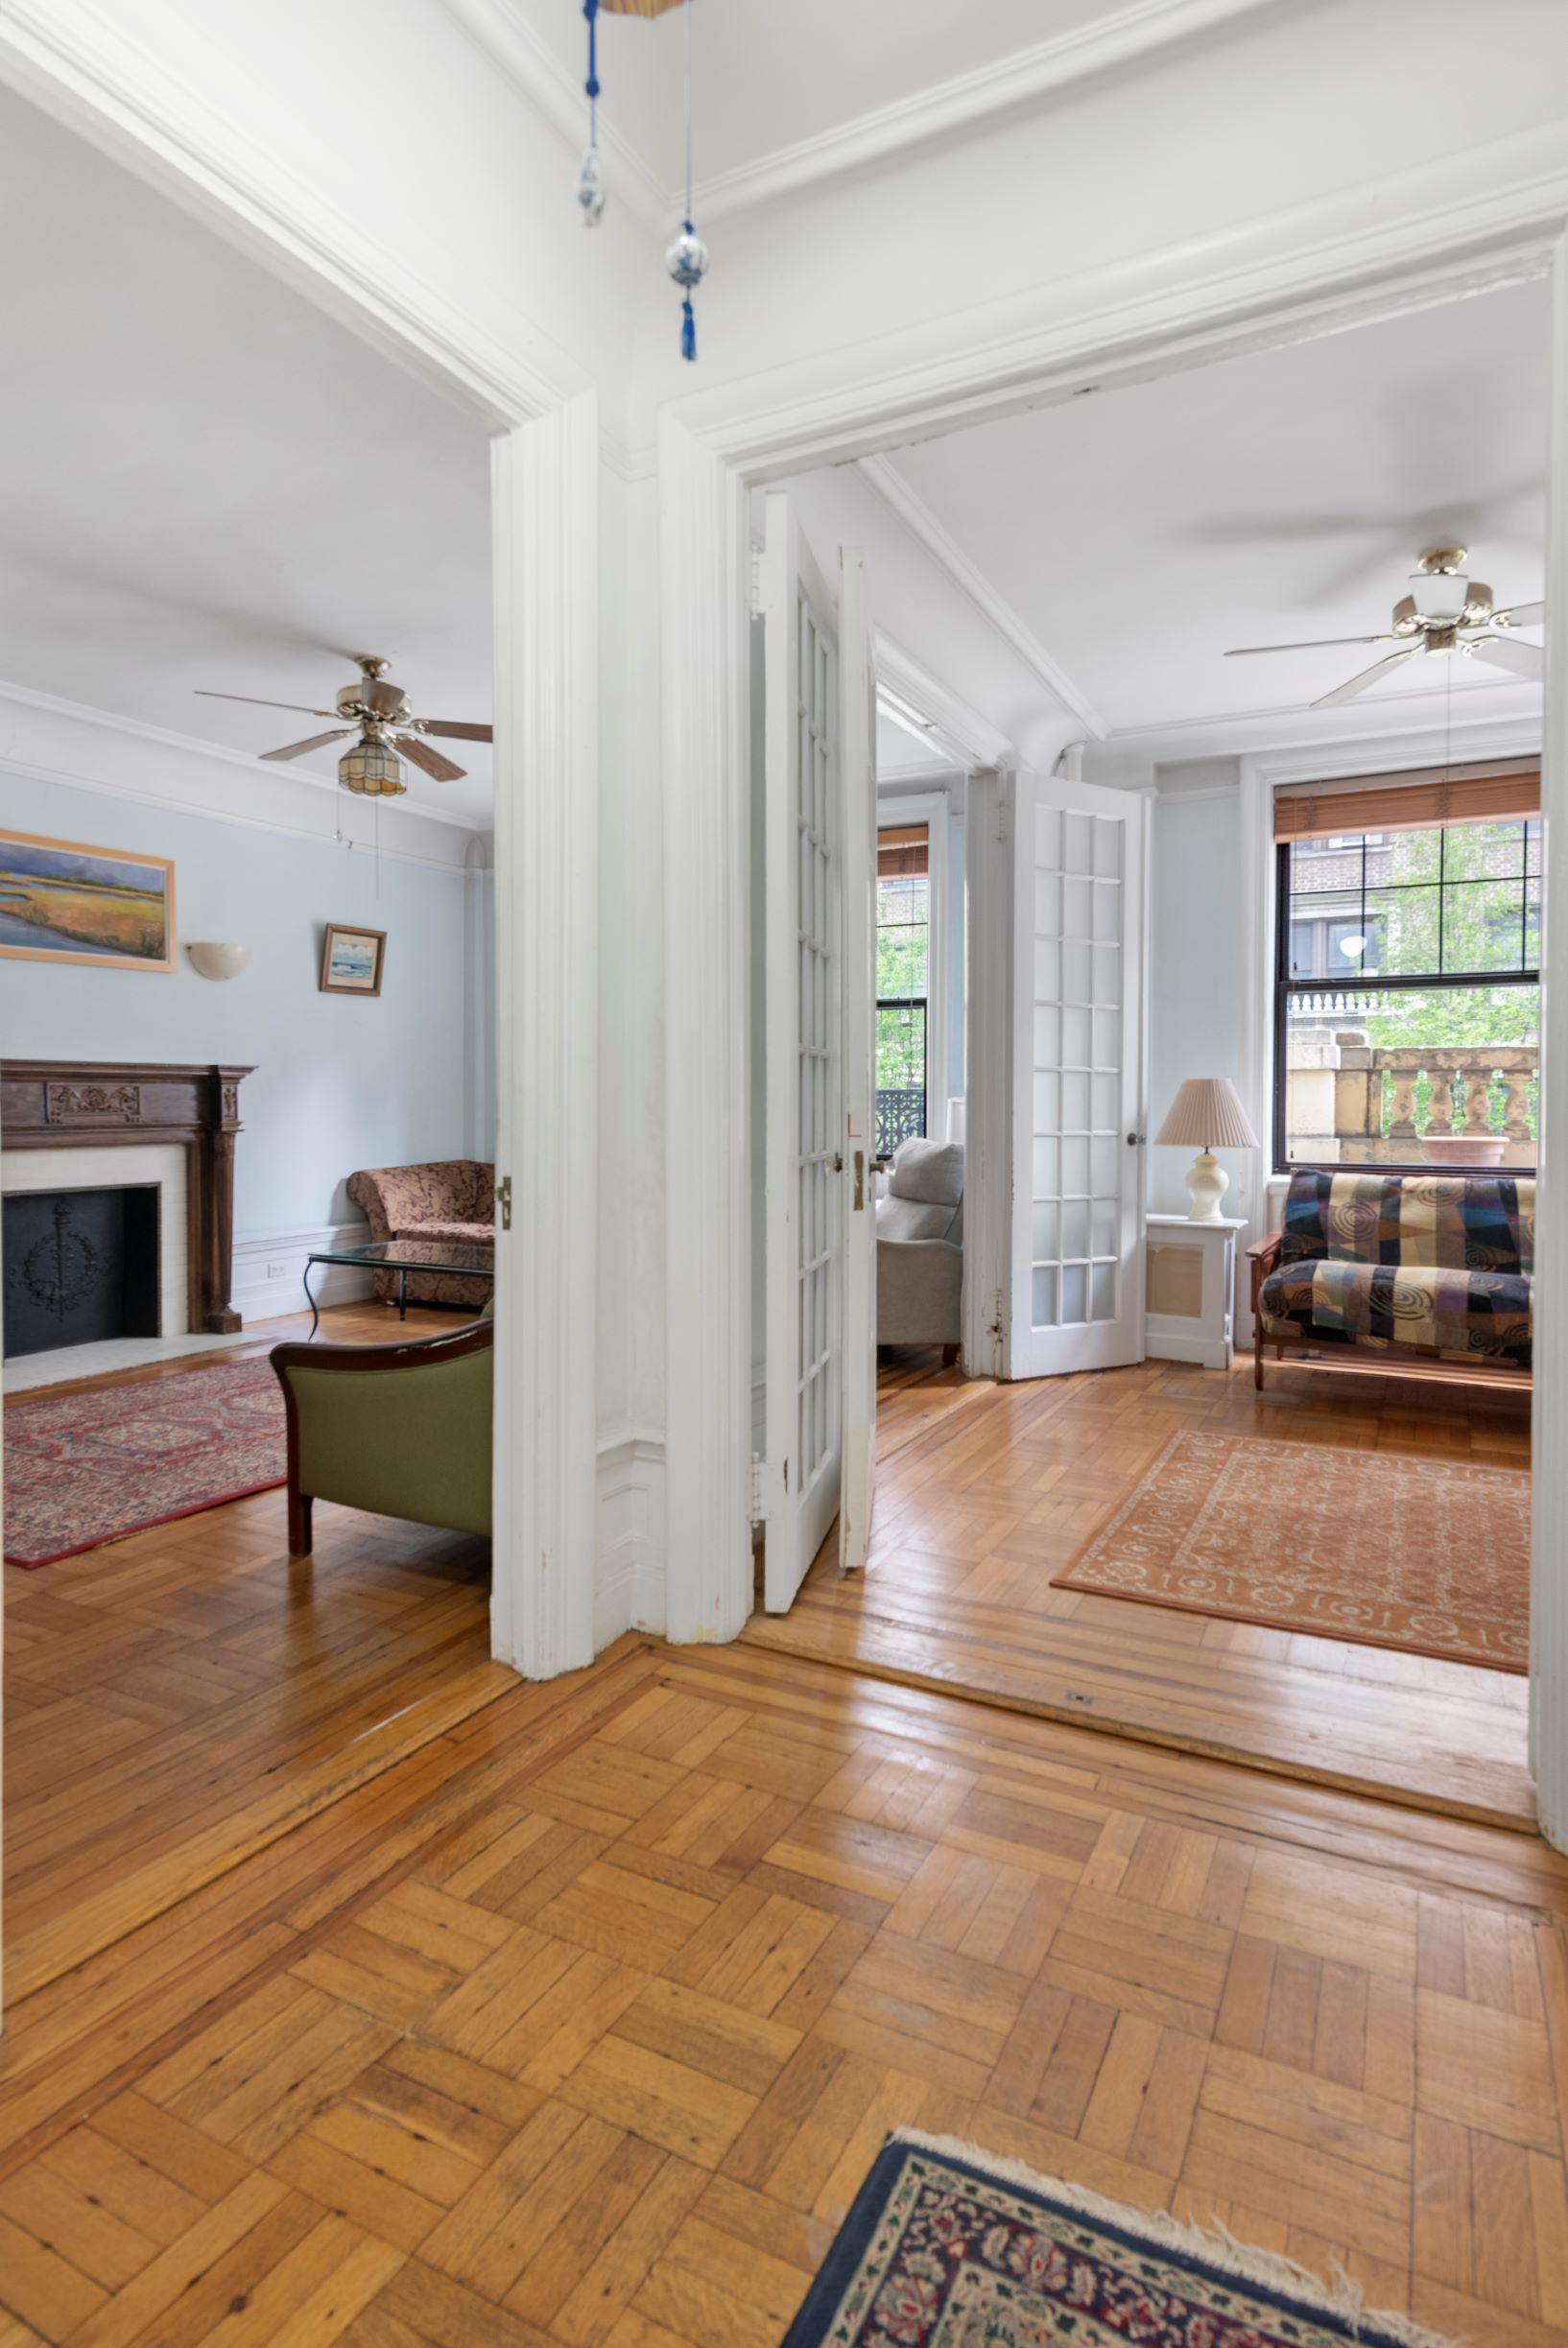 603 West 111th Street, New York, New York, New York, United States 10025, 4 Bedrooms Bedrooms, ,2 BathroomsBathrooms,Co-op,FOR SALE,West 111th Street,2,1166